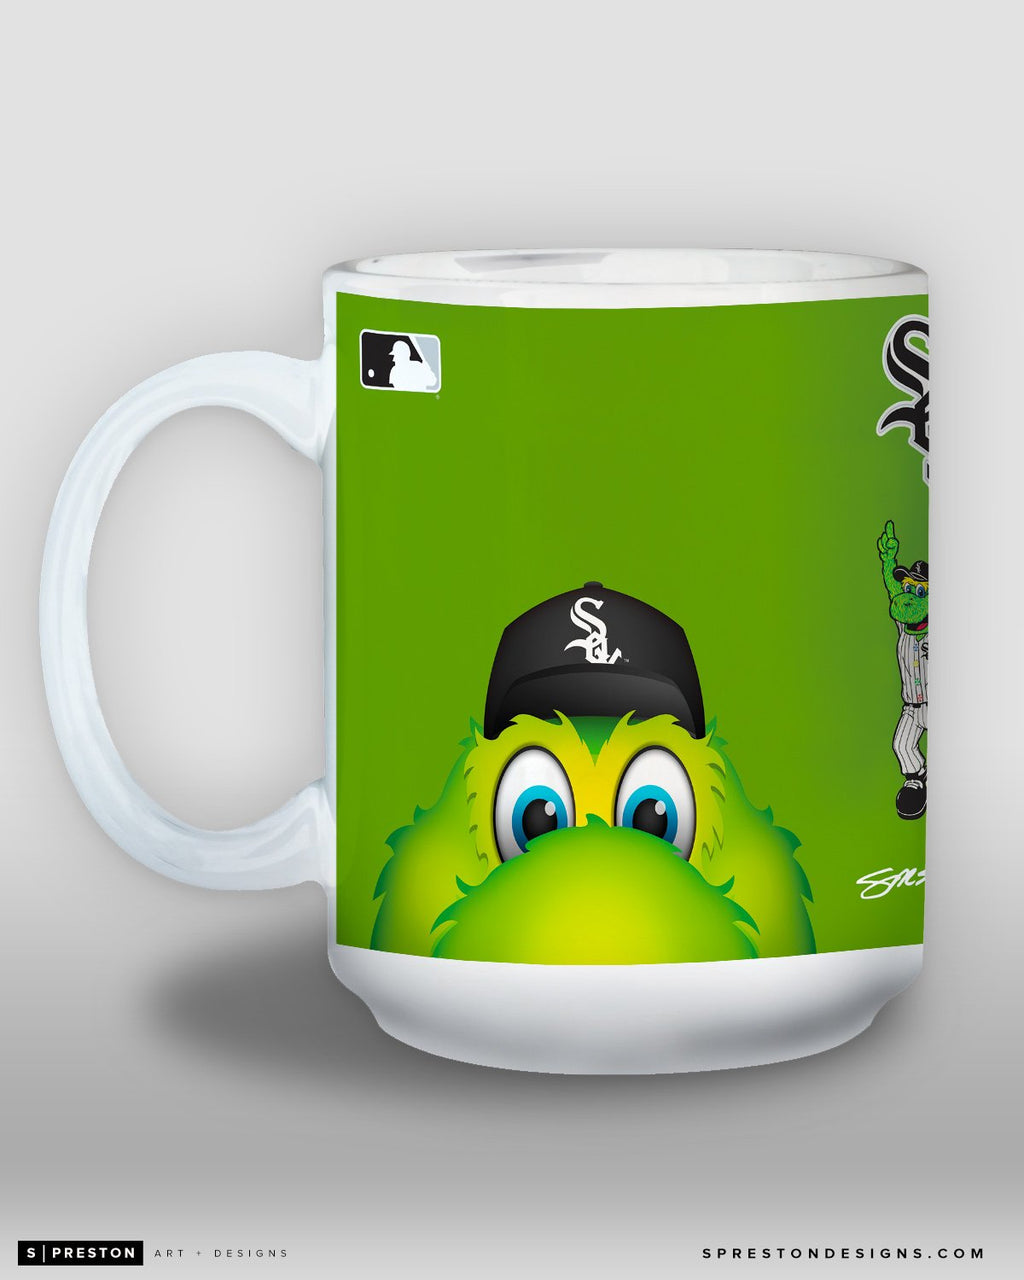 Minimalist Southpaw Coffee Mug - MLB Licensed - Chicago White Sox Mascot